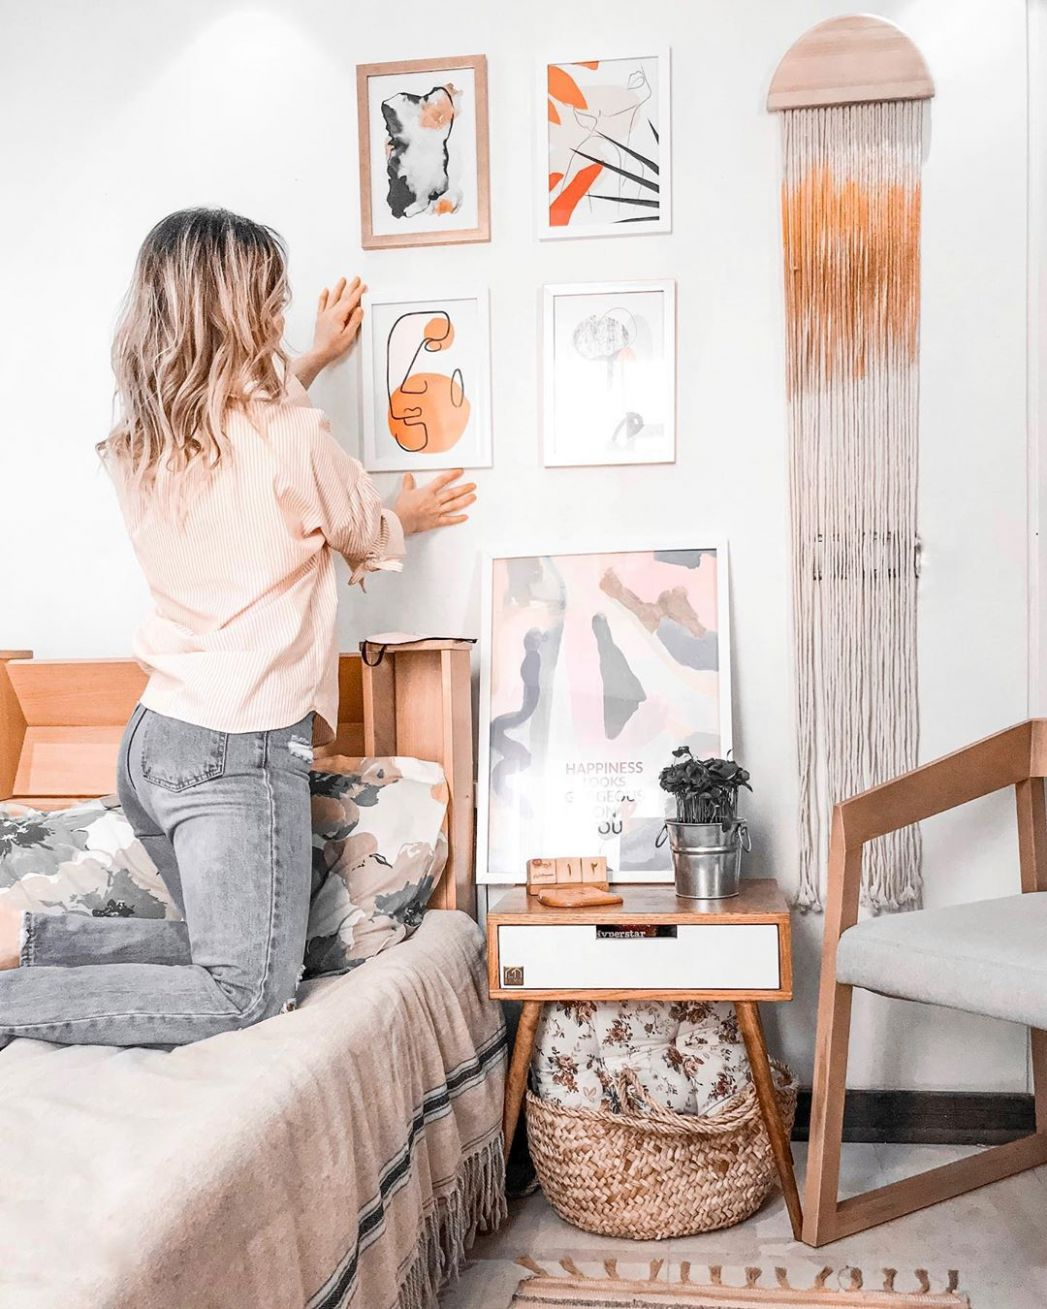 12 Best Wall Decor Ideas For 12 You Should Try Out | Decoholic - wall decor ideas next